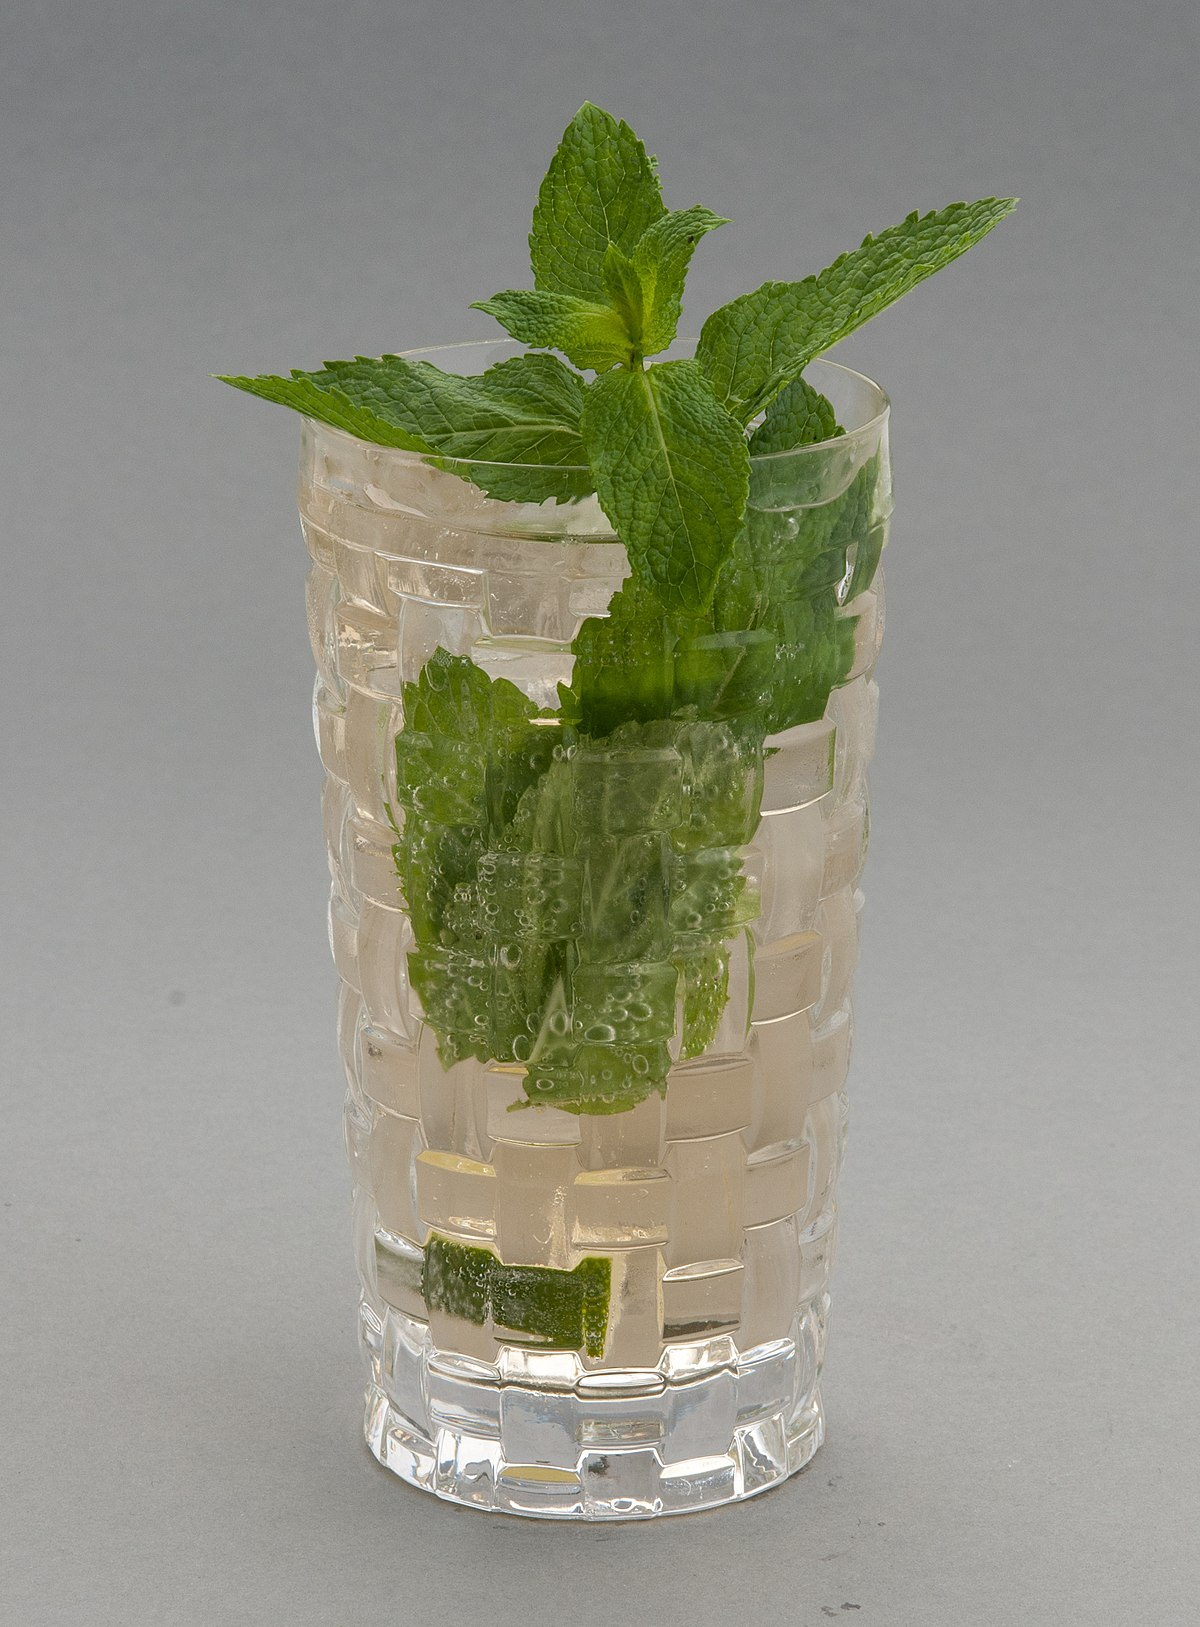 Bar En Verre But Mojito — Wiktionnaire